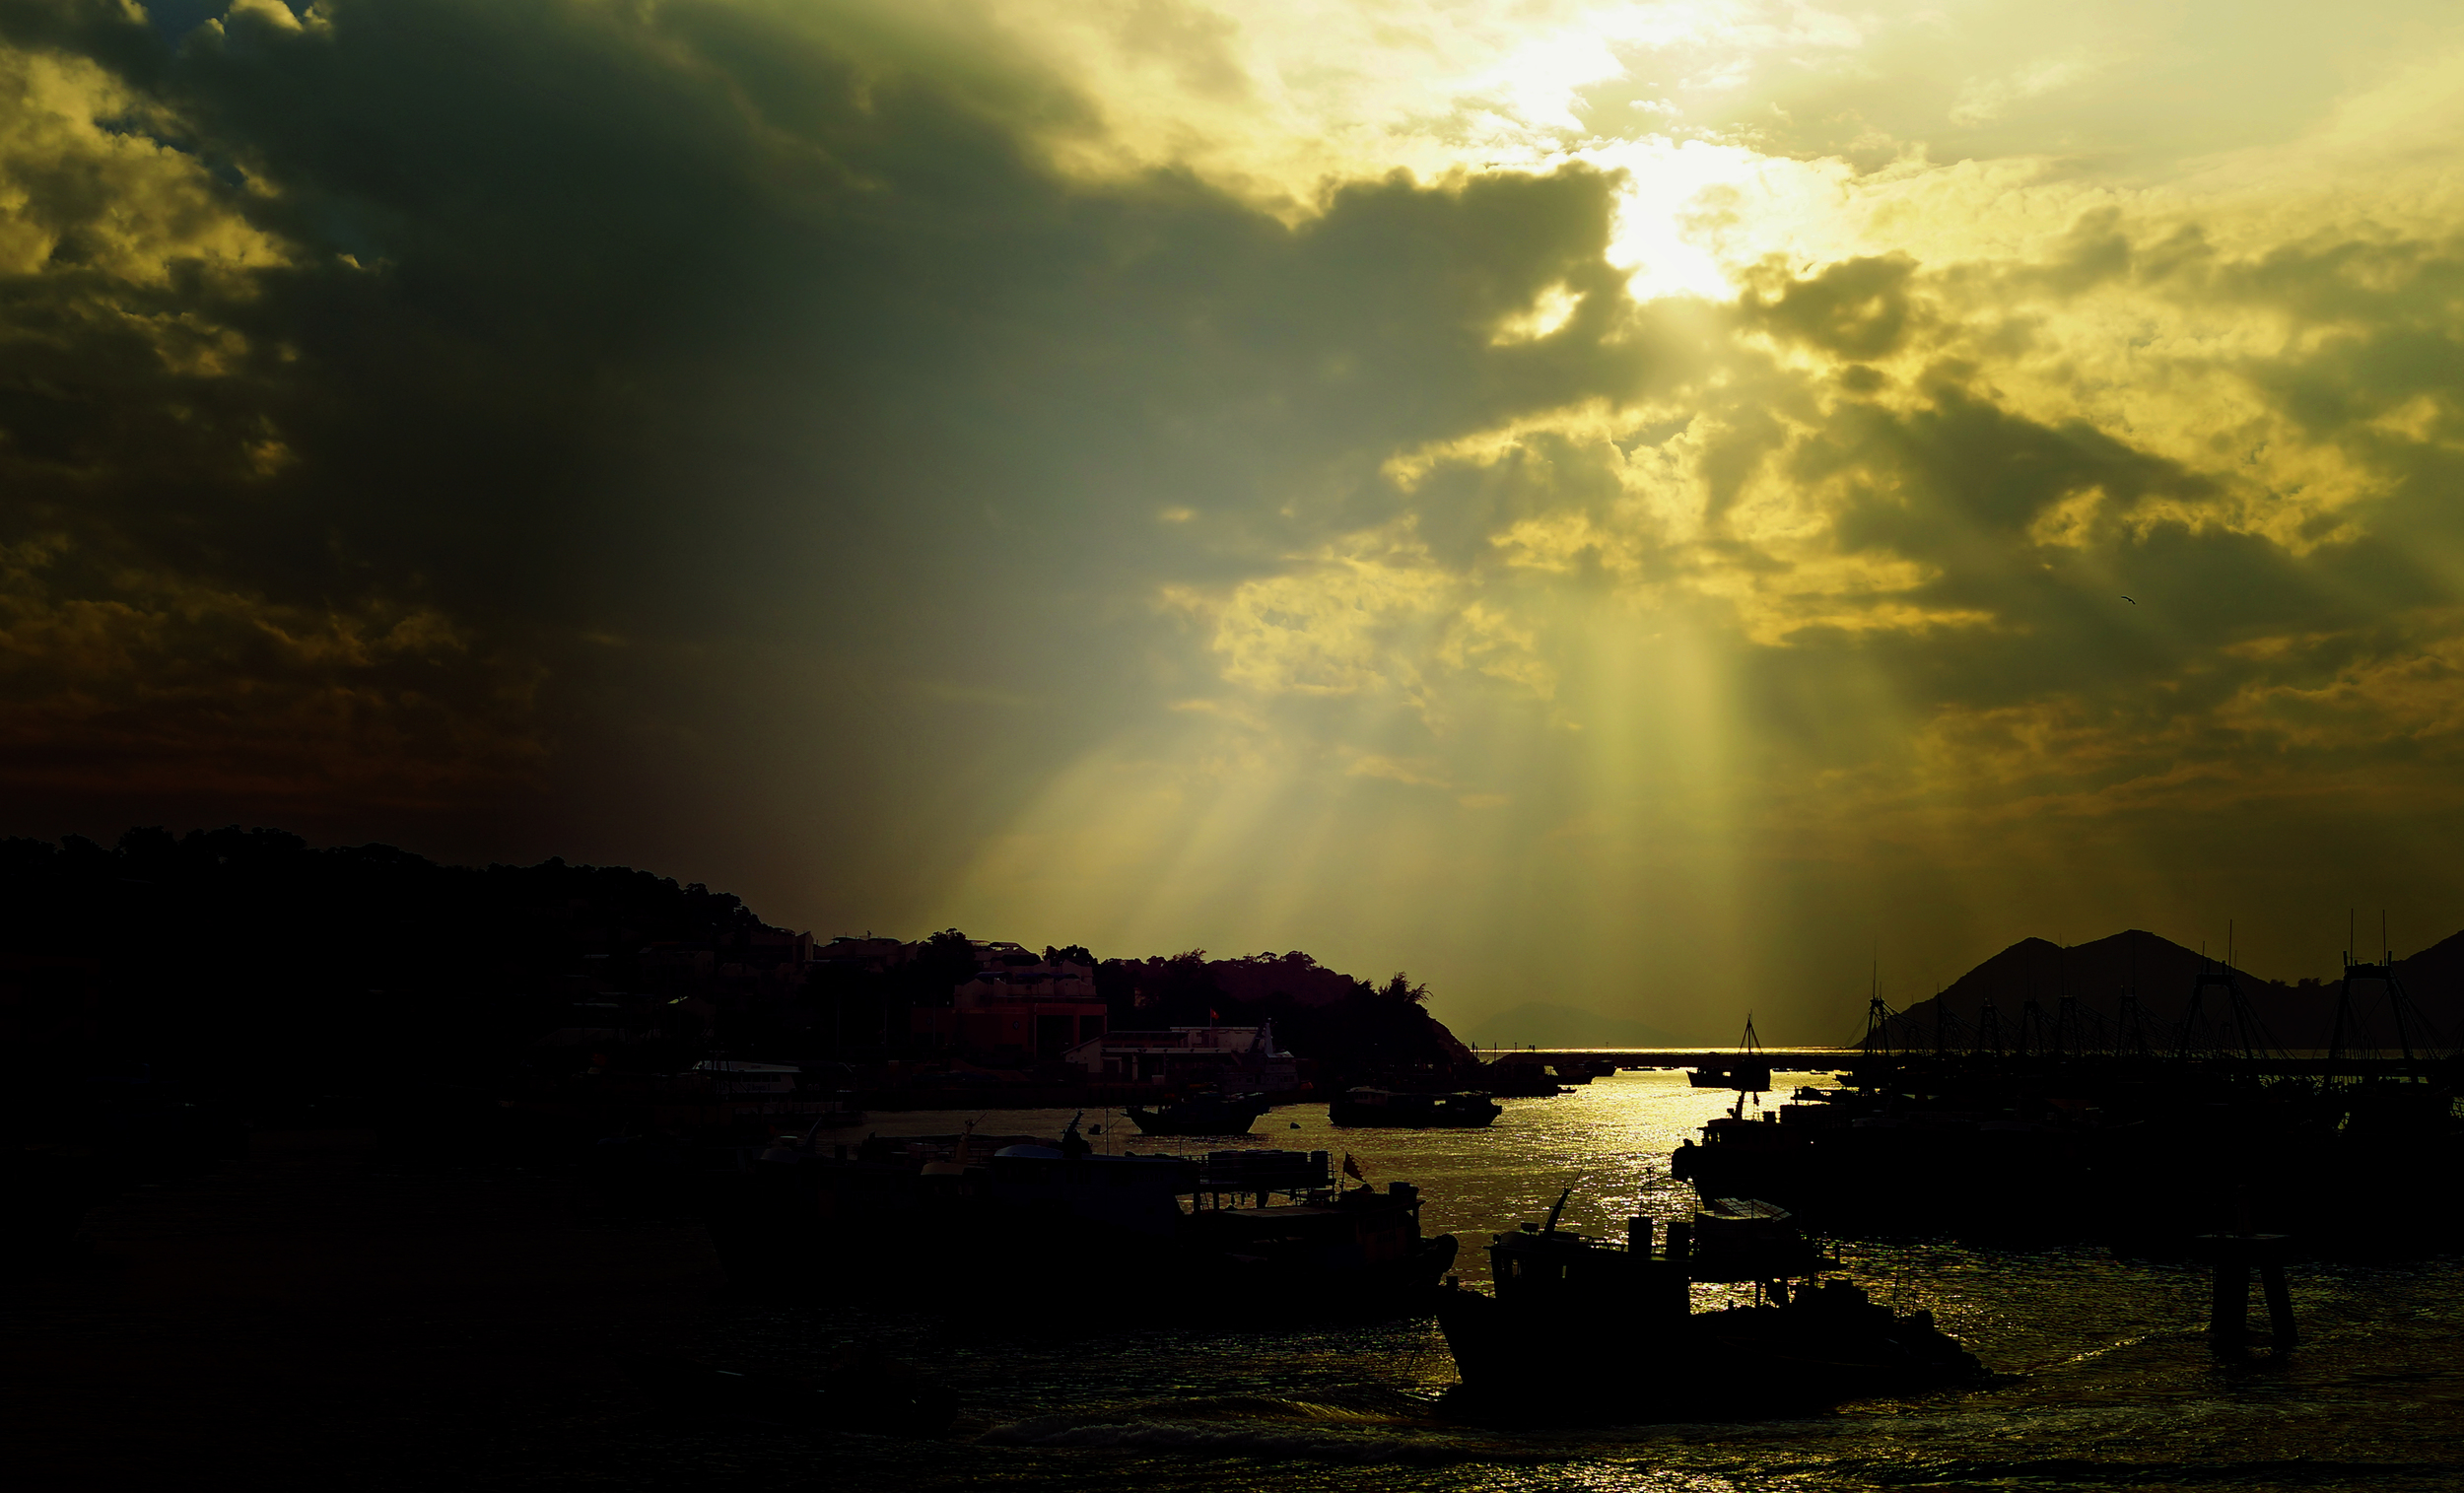 Even on a cloudy day the sunset at Cheung Chau Island is just lovely